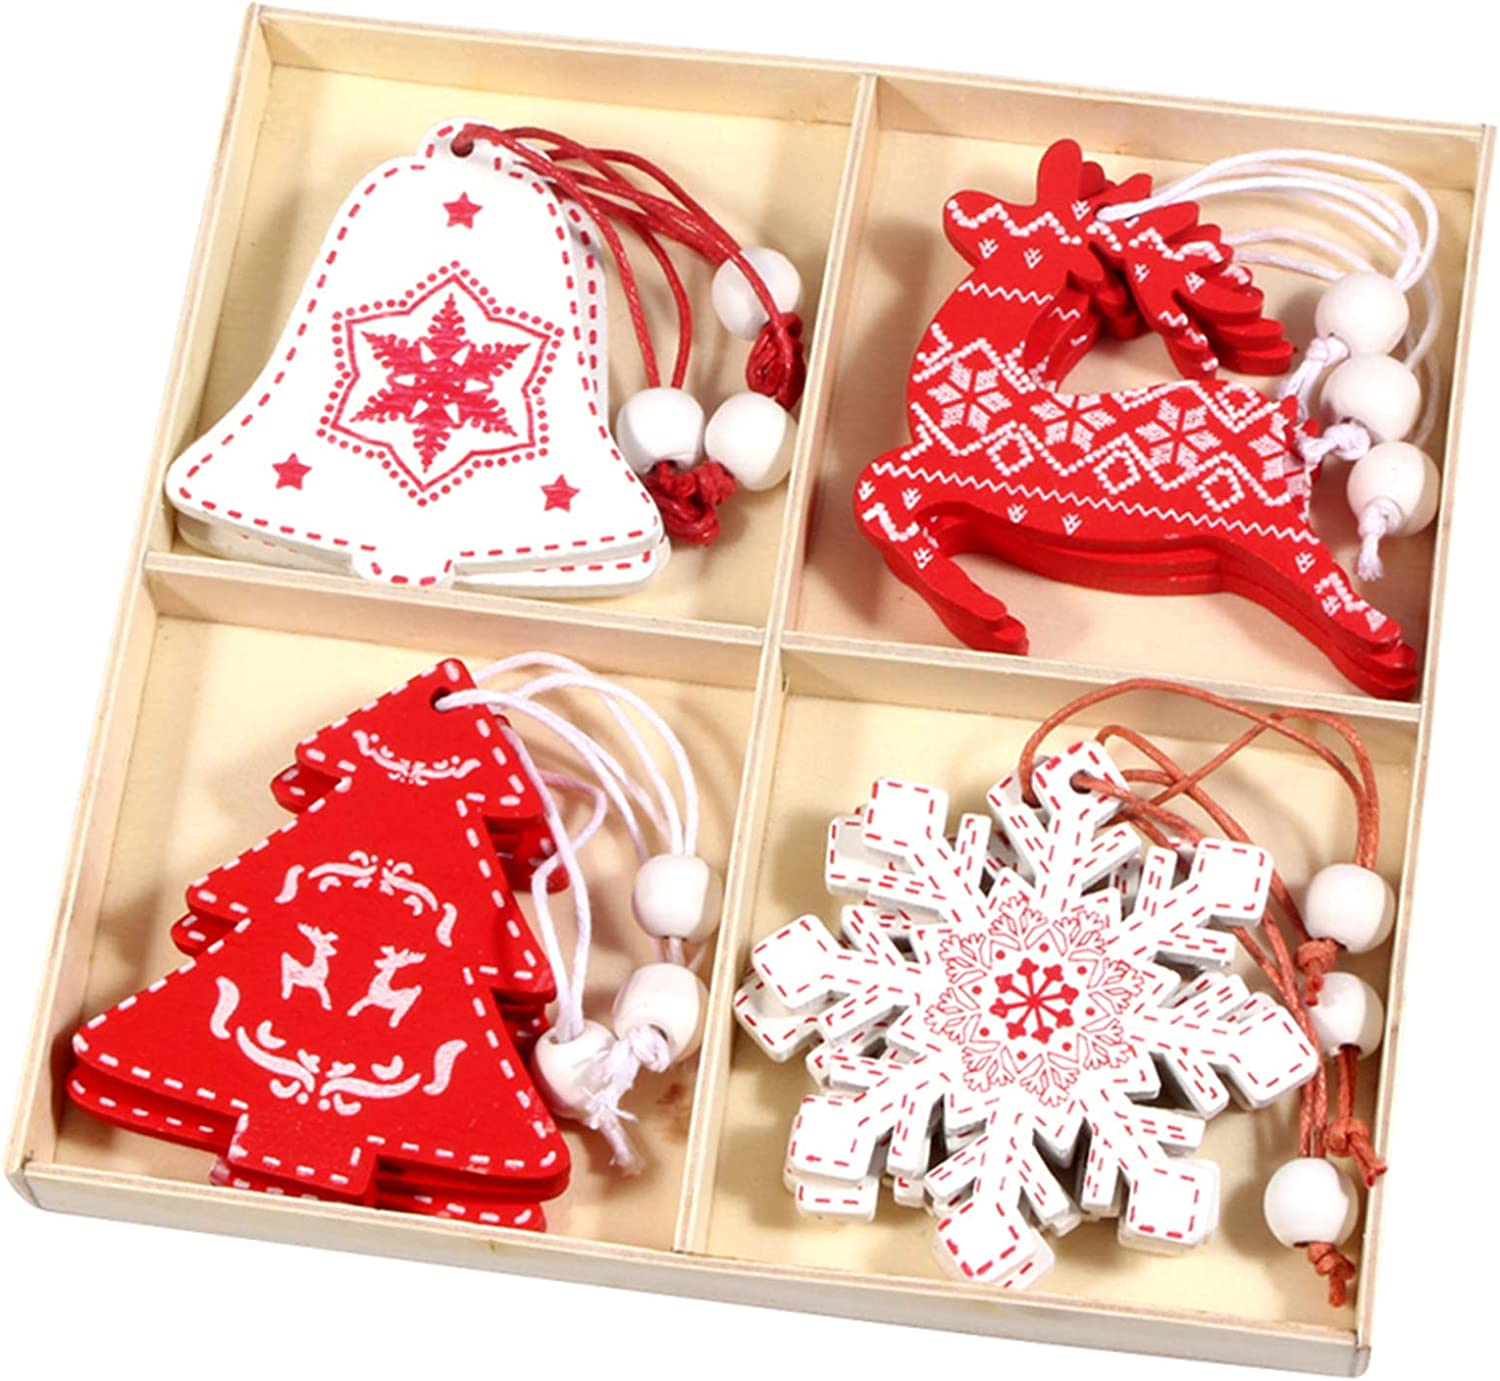 12 Pcs Christmas Ornament Set - Wooden Christmas Theme Hanging Decoration - Xmas Ornament Decor for Christmas Tree, Door, Party, House - Contain Santa, Elk, Snowflake, Bell, etc, More Theme Styles